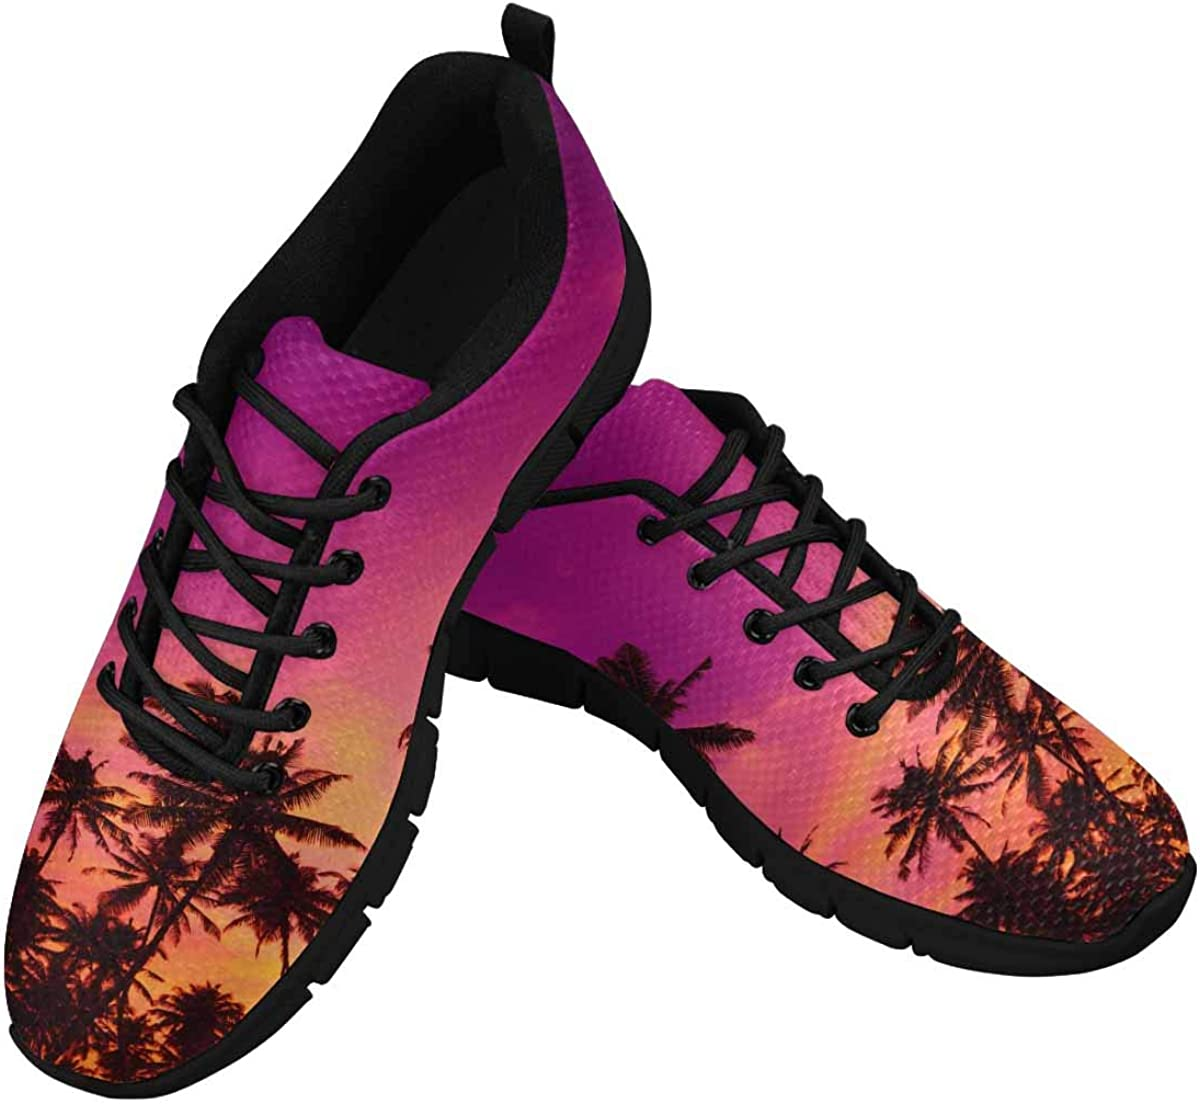 INTERESTPRINT Tropical Sunset Palm Tree Women's Running Shoes Mesh Breathable Sports Casual Shoes